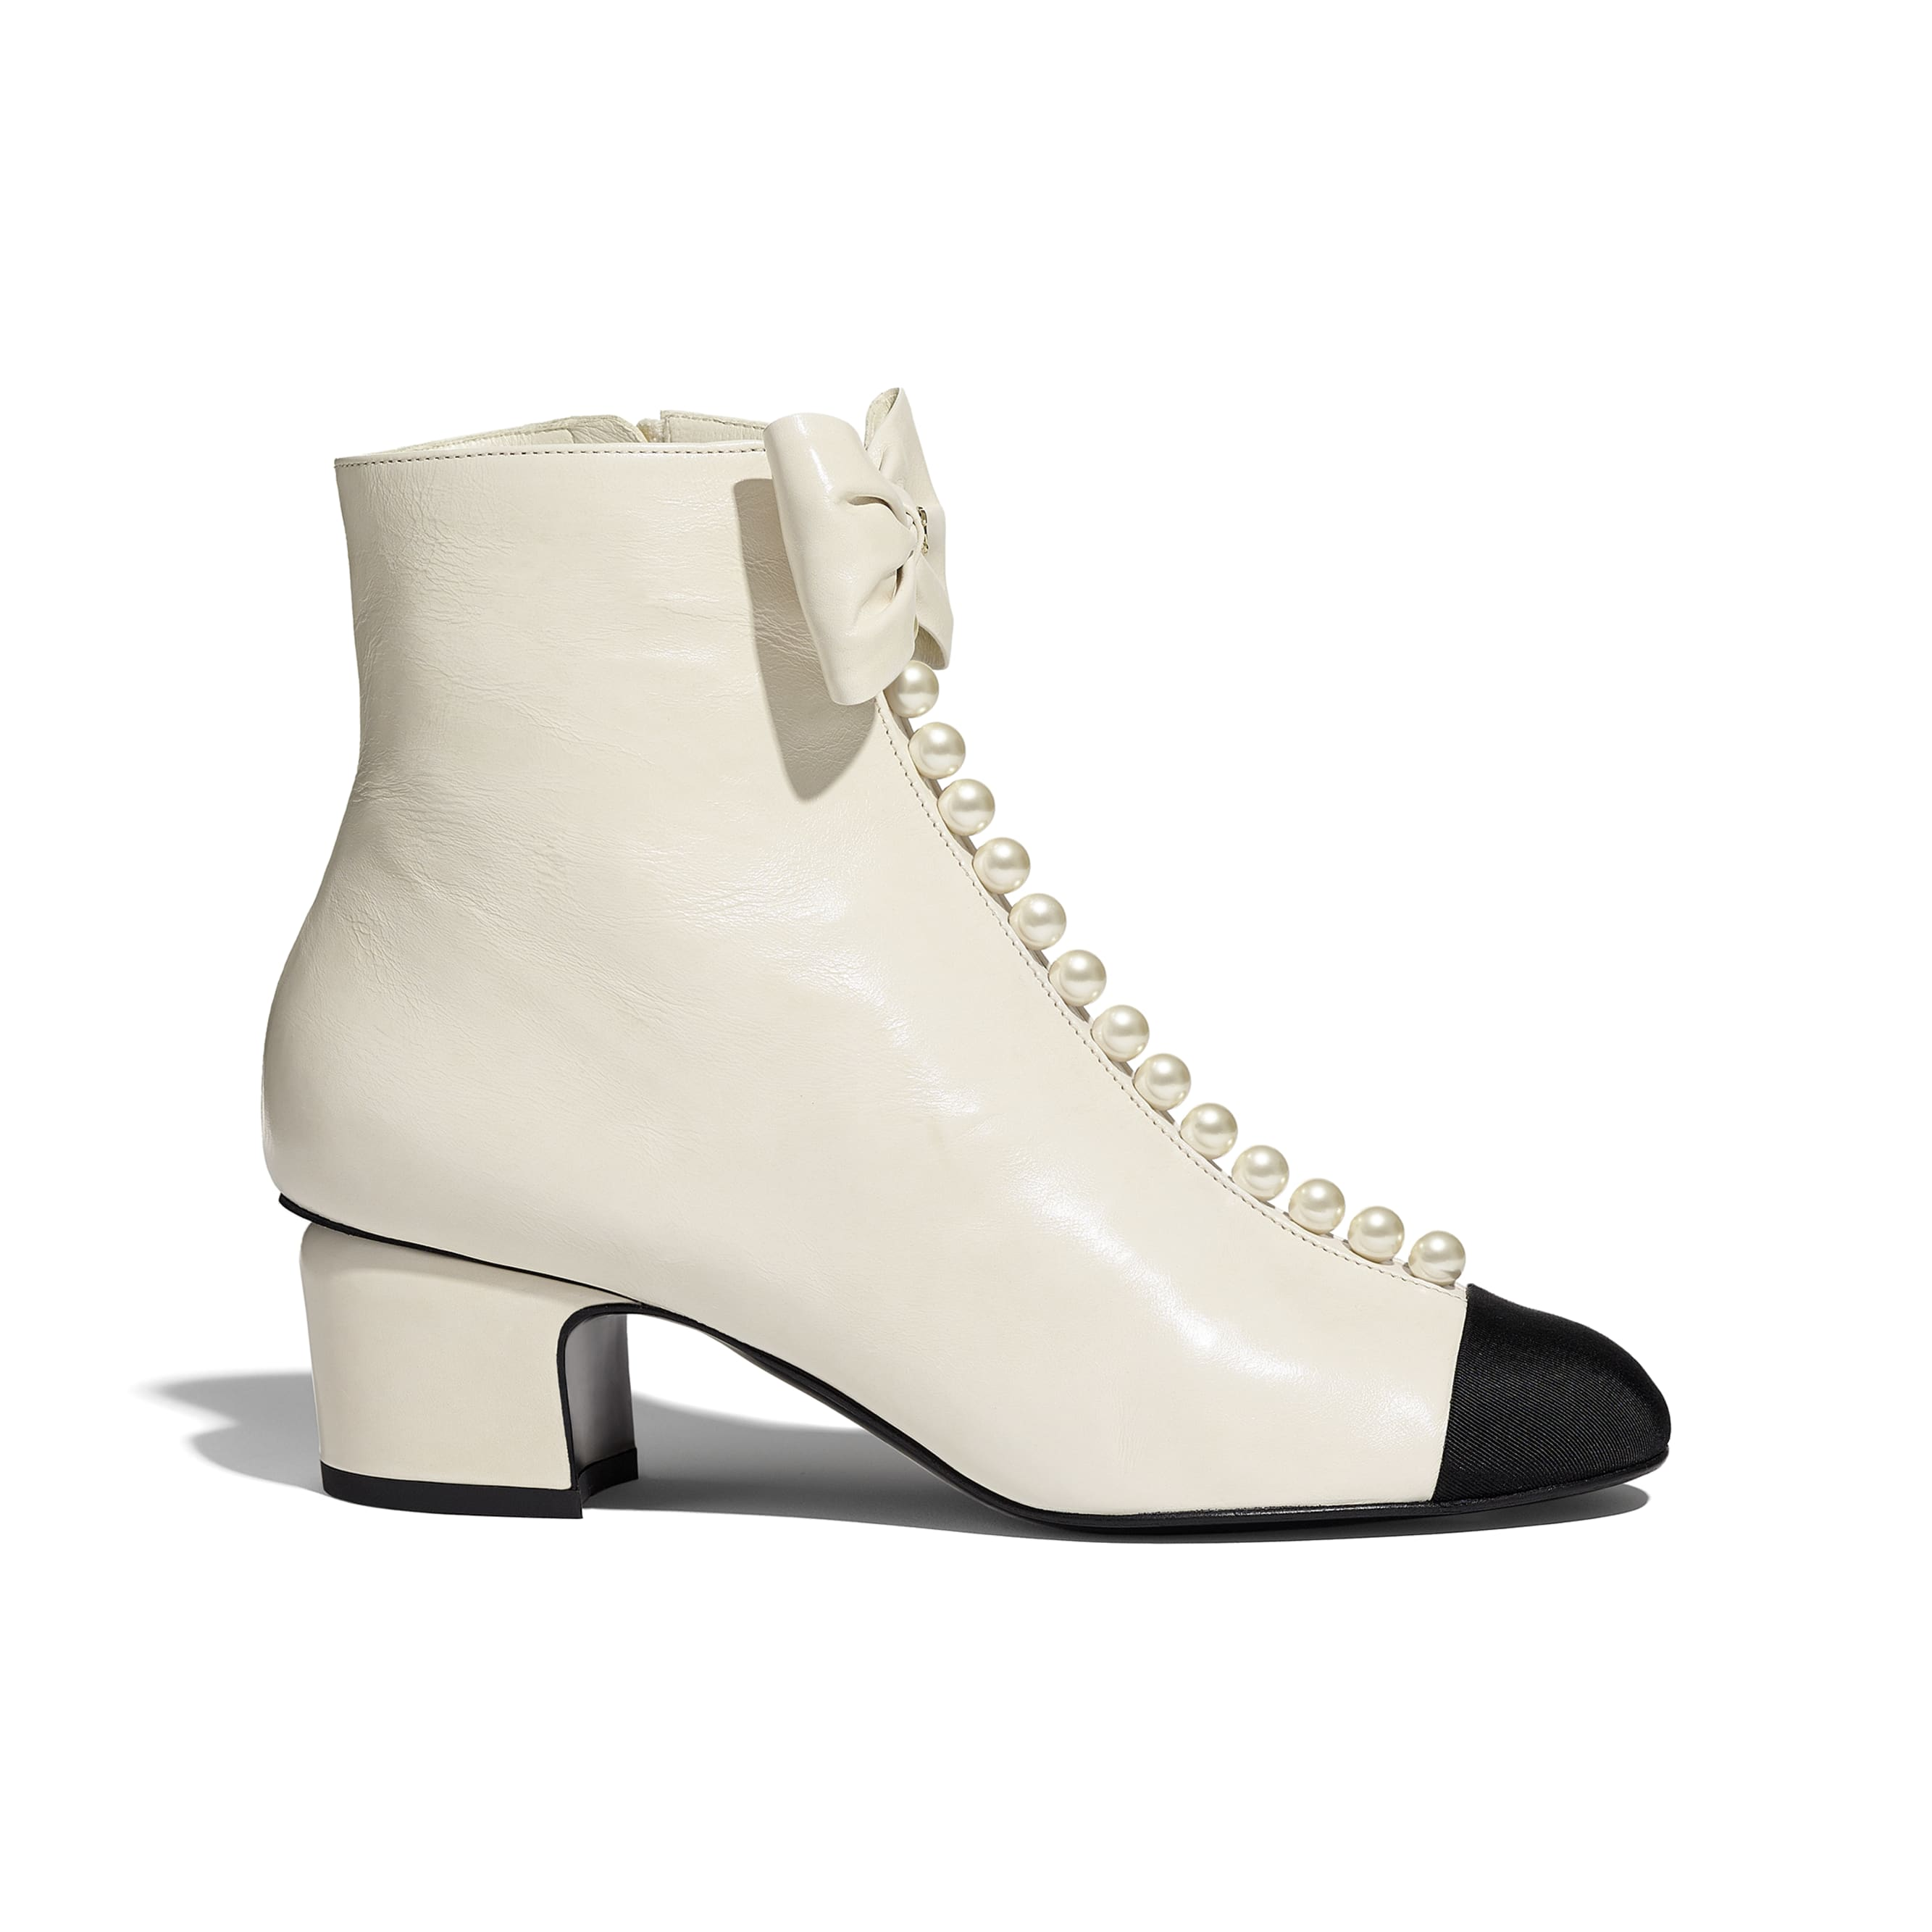 Ankle Boots - White & Black - Shiny Calfskin & Grosgrain  - CHANEL - Default view - see standard sized version